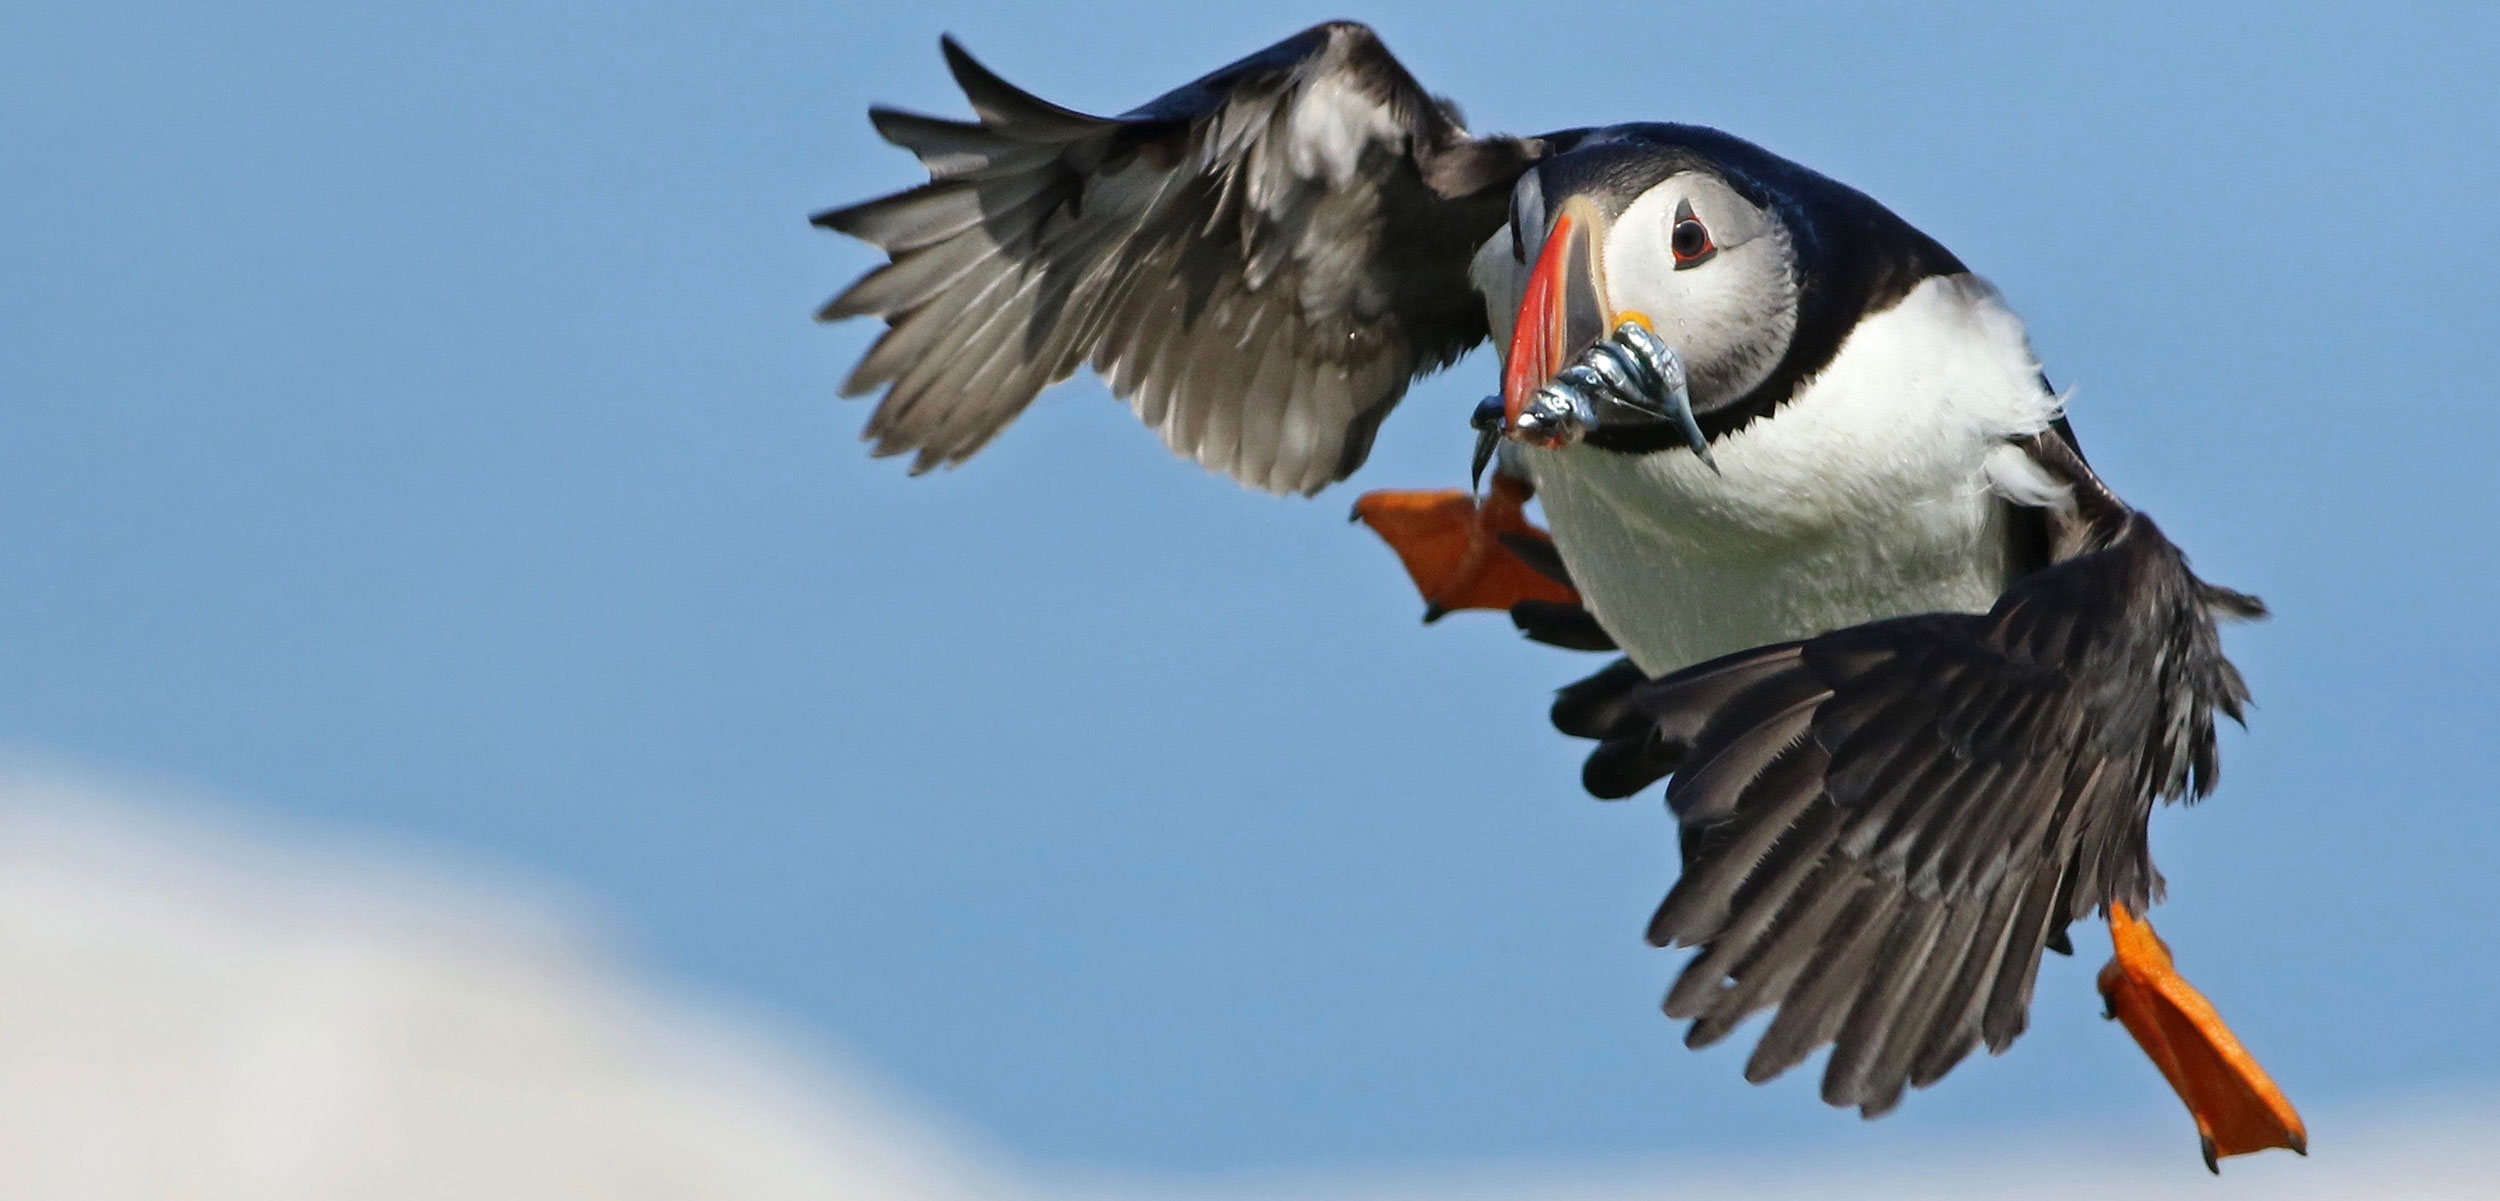 an Atlantic puffin in flight with food in its mouth